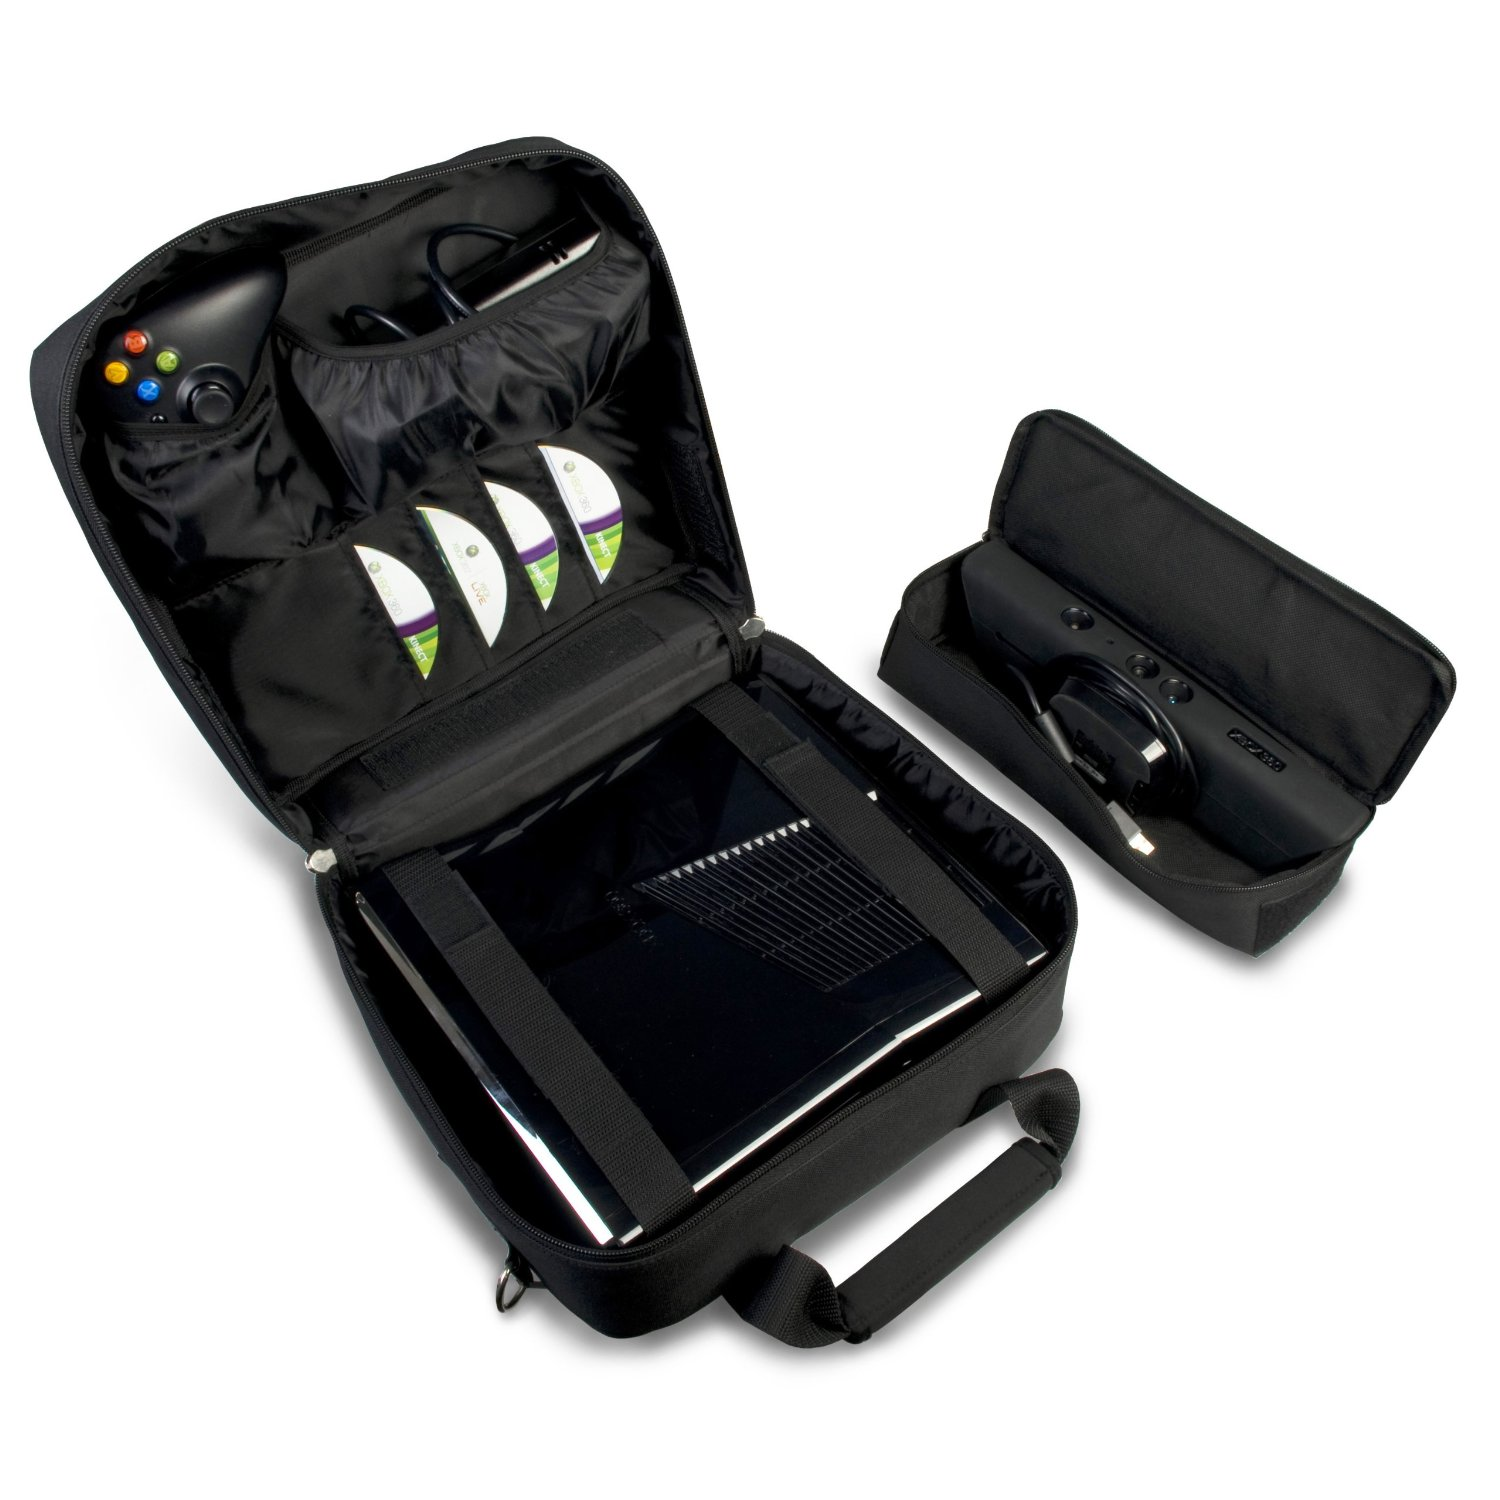 Xbox 360 Travel Case With Space For Kinect, Controllers ...